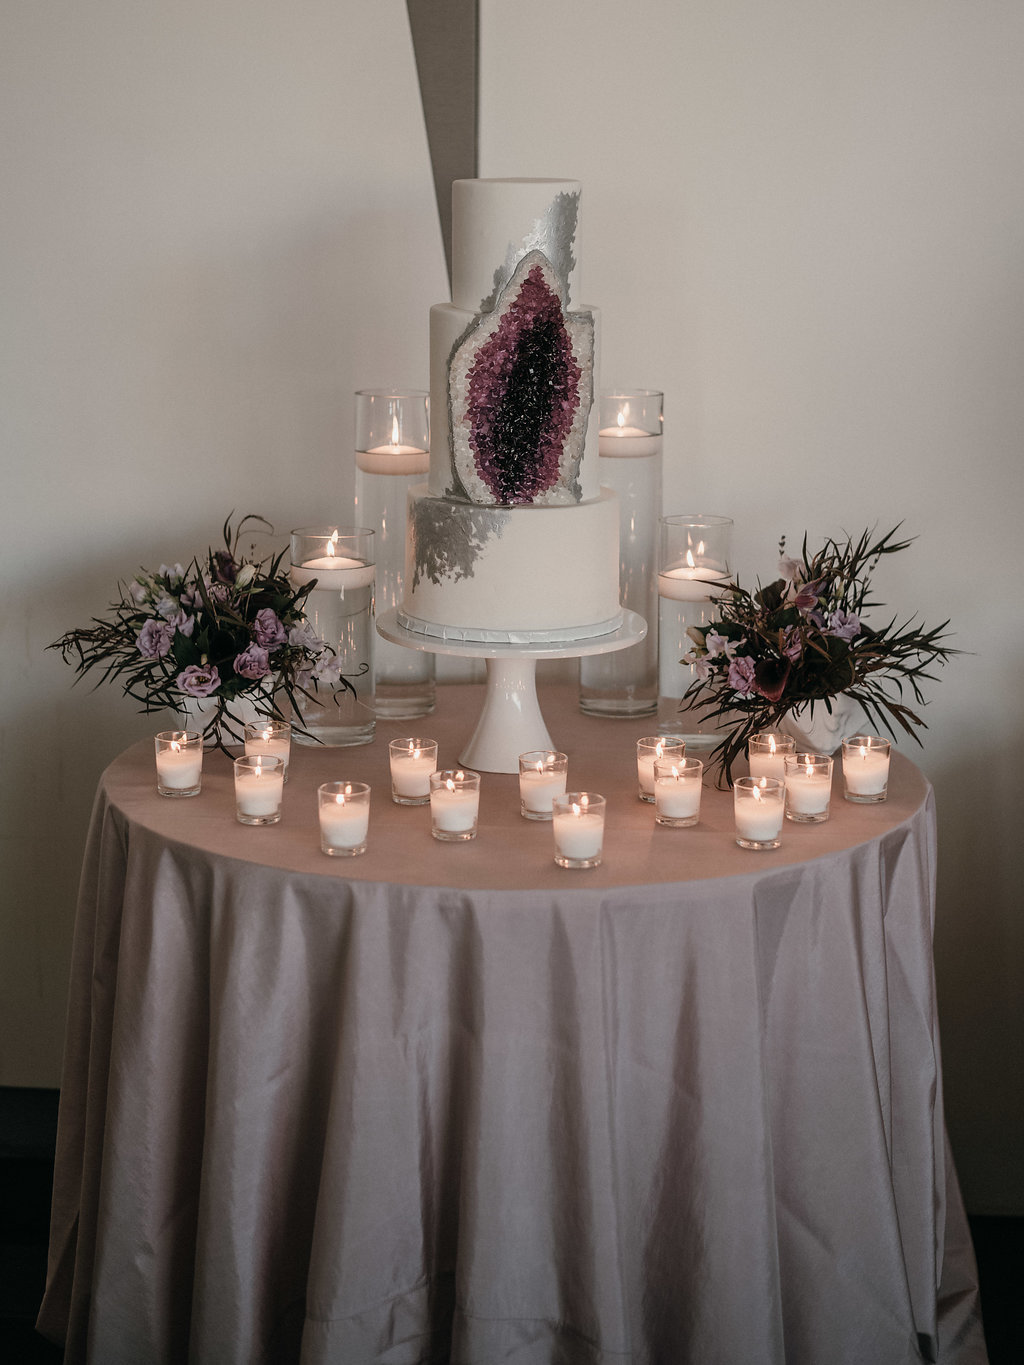 Fab Event Design Wedding Planning Minneapolis Rochester St. Paul Full Service Day of Management13